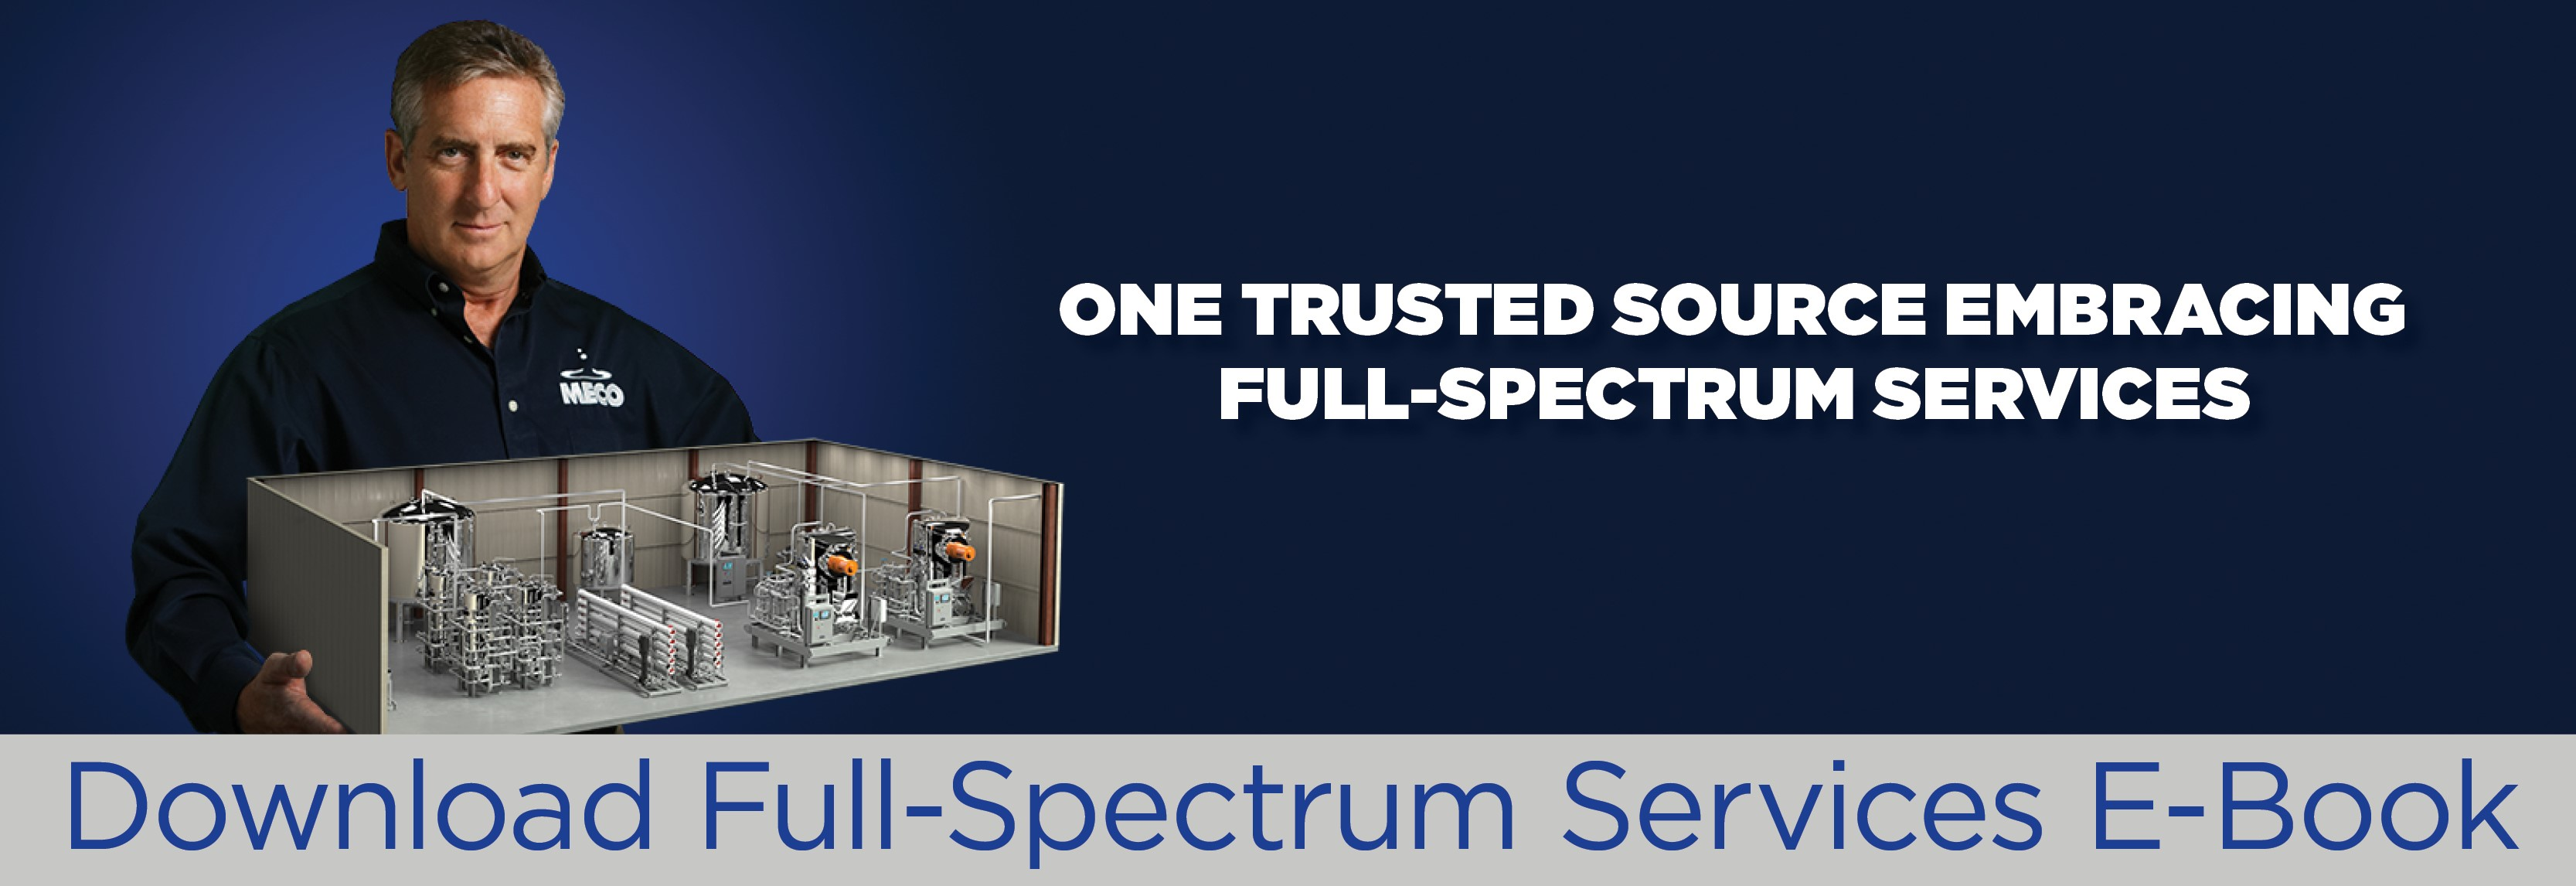 Full Spectrum Services_1600 x 550.jpg